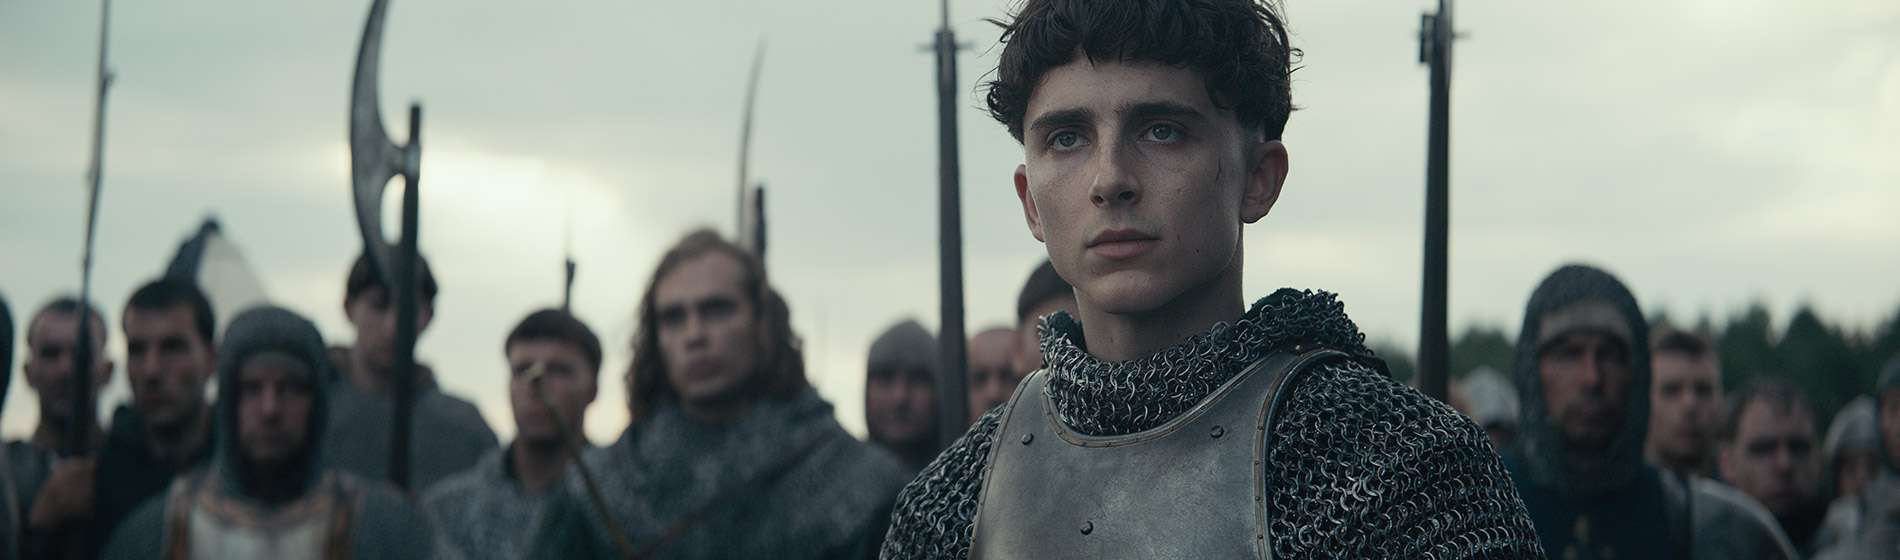 The King Timothee Chalamet Review